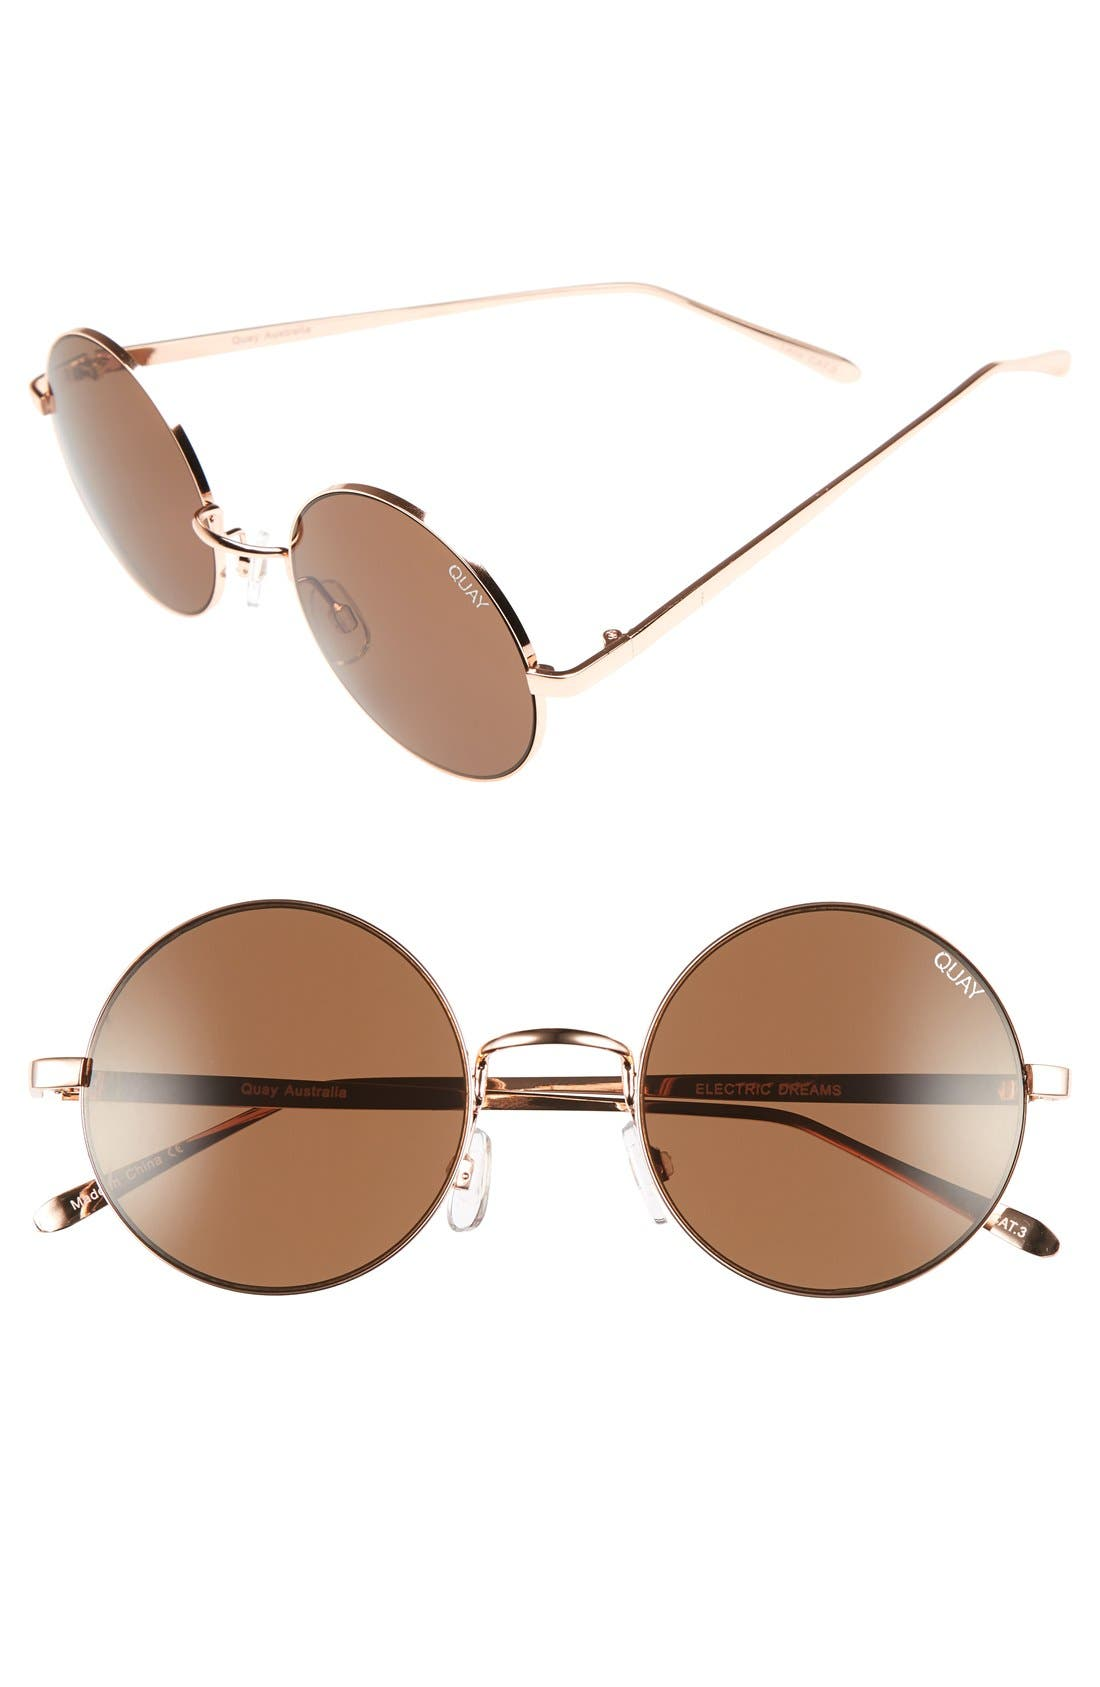 'Electric Dreams' 52mm Round Sunglasses,                         Main,                         color, Rose Gold/ Brown